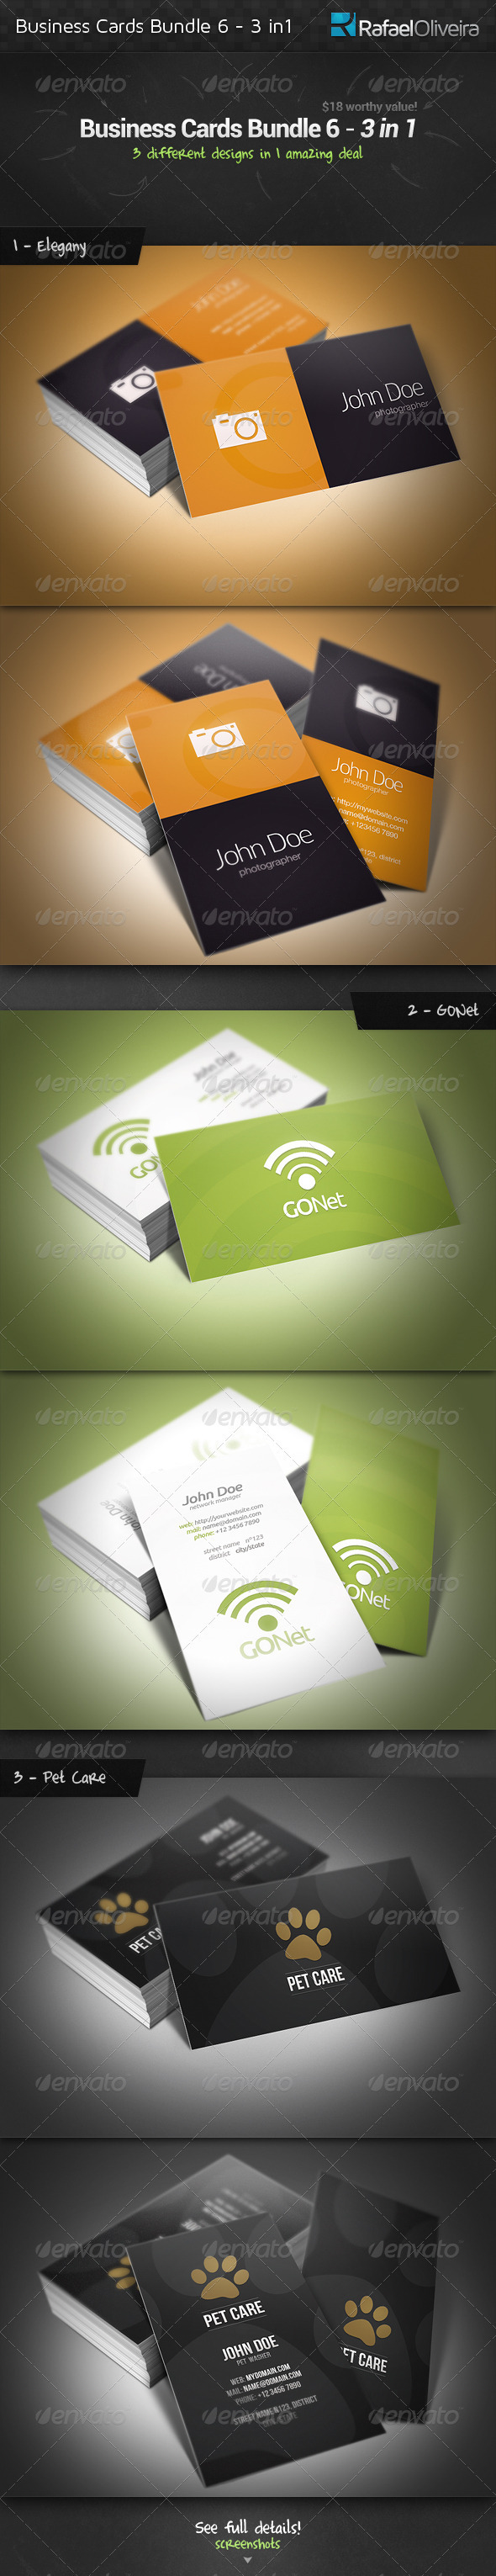 GraphicRiver Business Cards Bundle 6 3 in 1 3556626